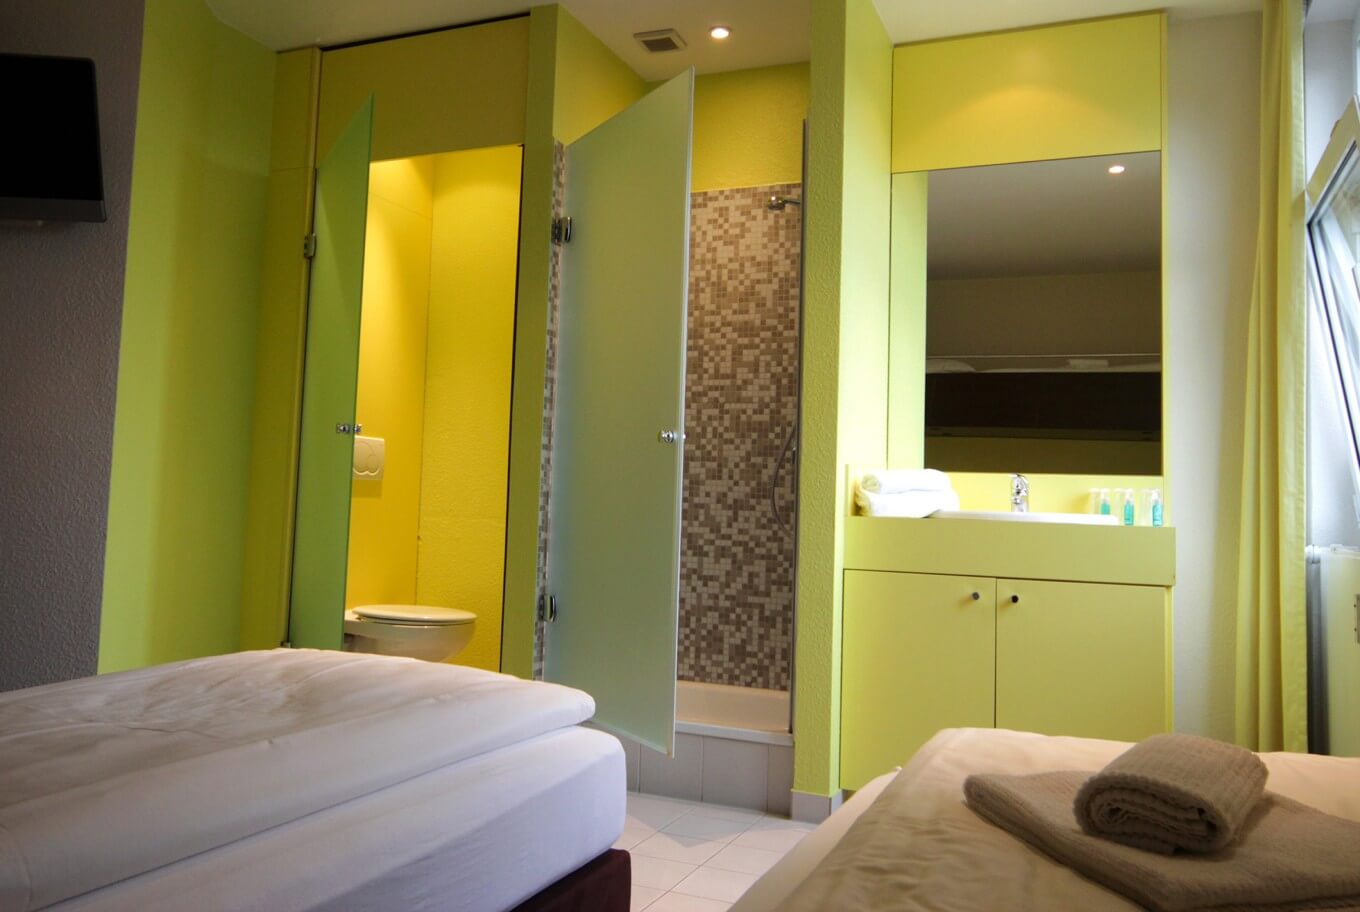 Standard rooms in Arthotel ANA HafenCity